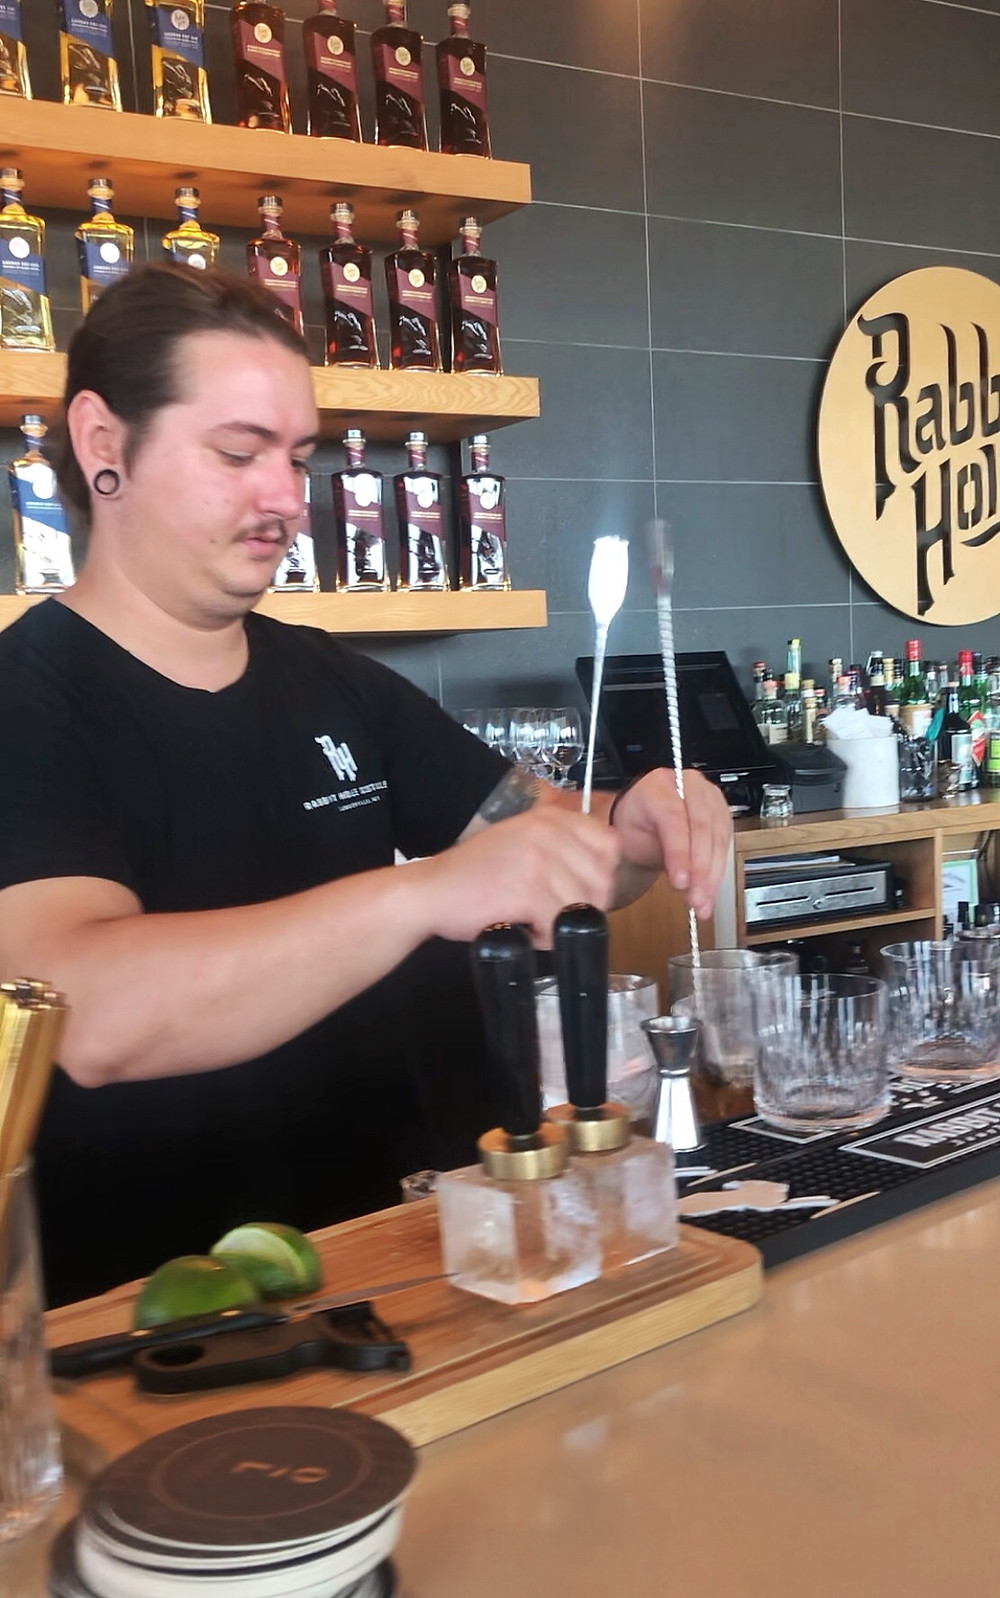 Bartender uses long spoons to make Old Fashioned cocktails at  Rabbit Hole distillery, Urban bourbon trail, Bourbon Trail travel guide, travel blog, best distillery tour